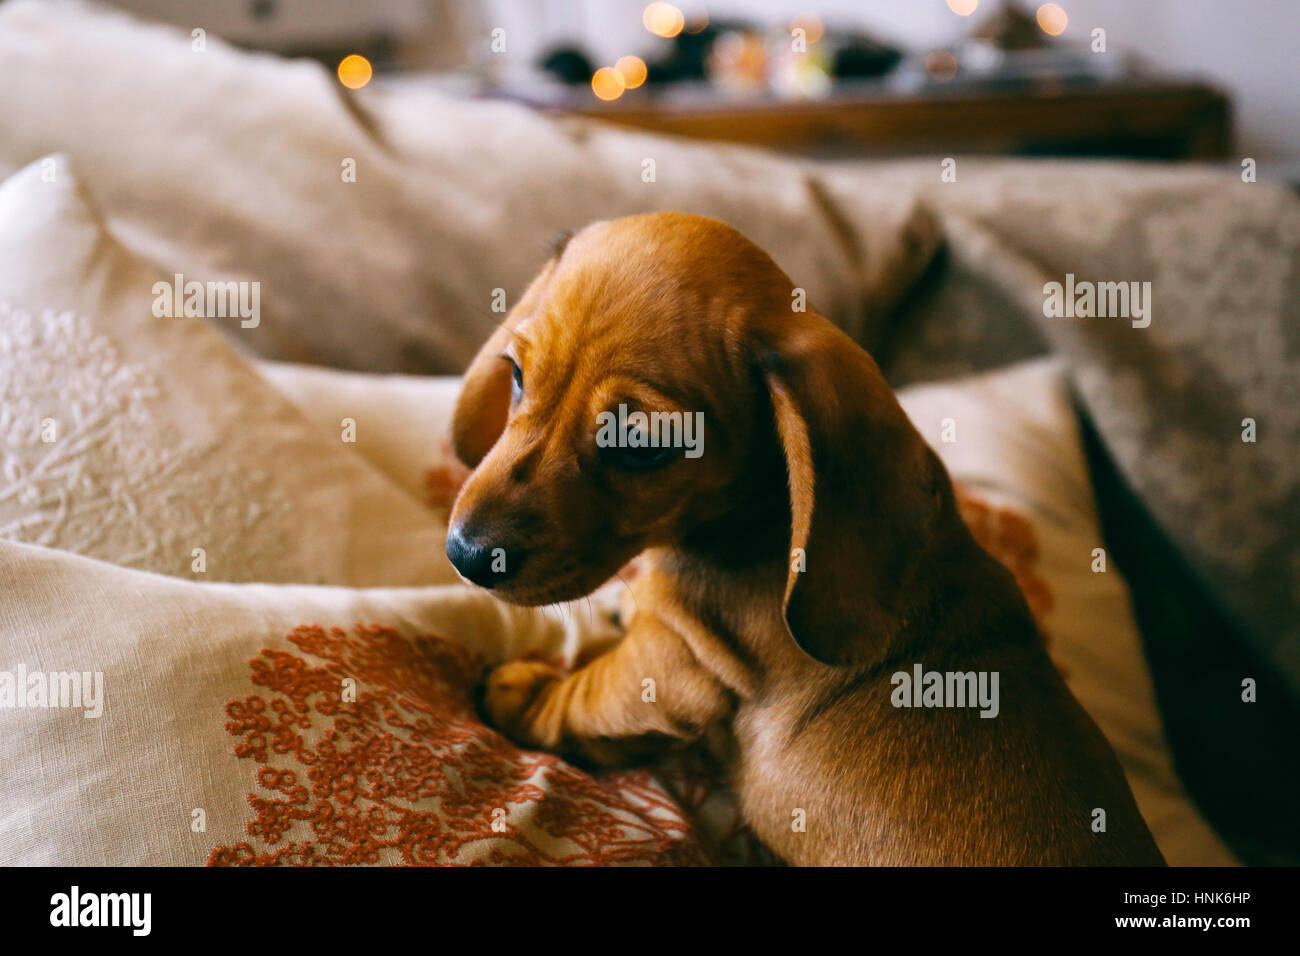 8 Weeks Old Smooth Brown Dachshund Puppy Climbing Over Cushions And A Stock Photo Alamy